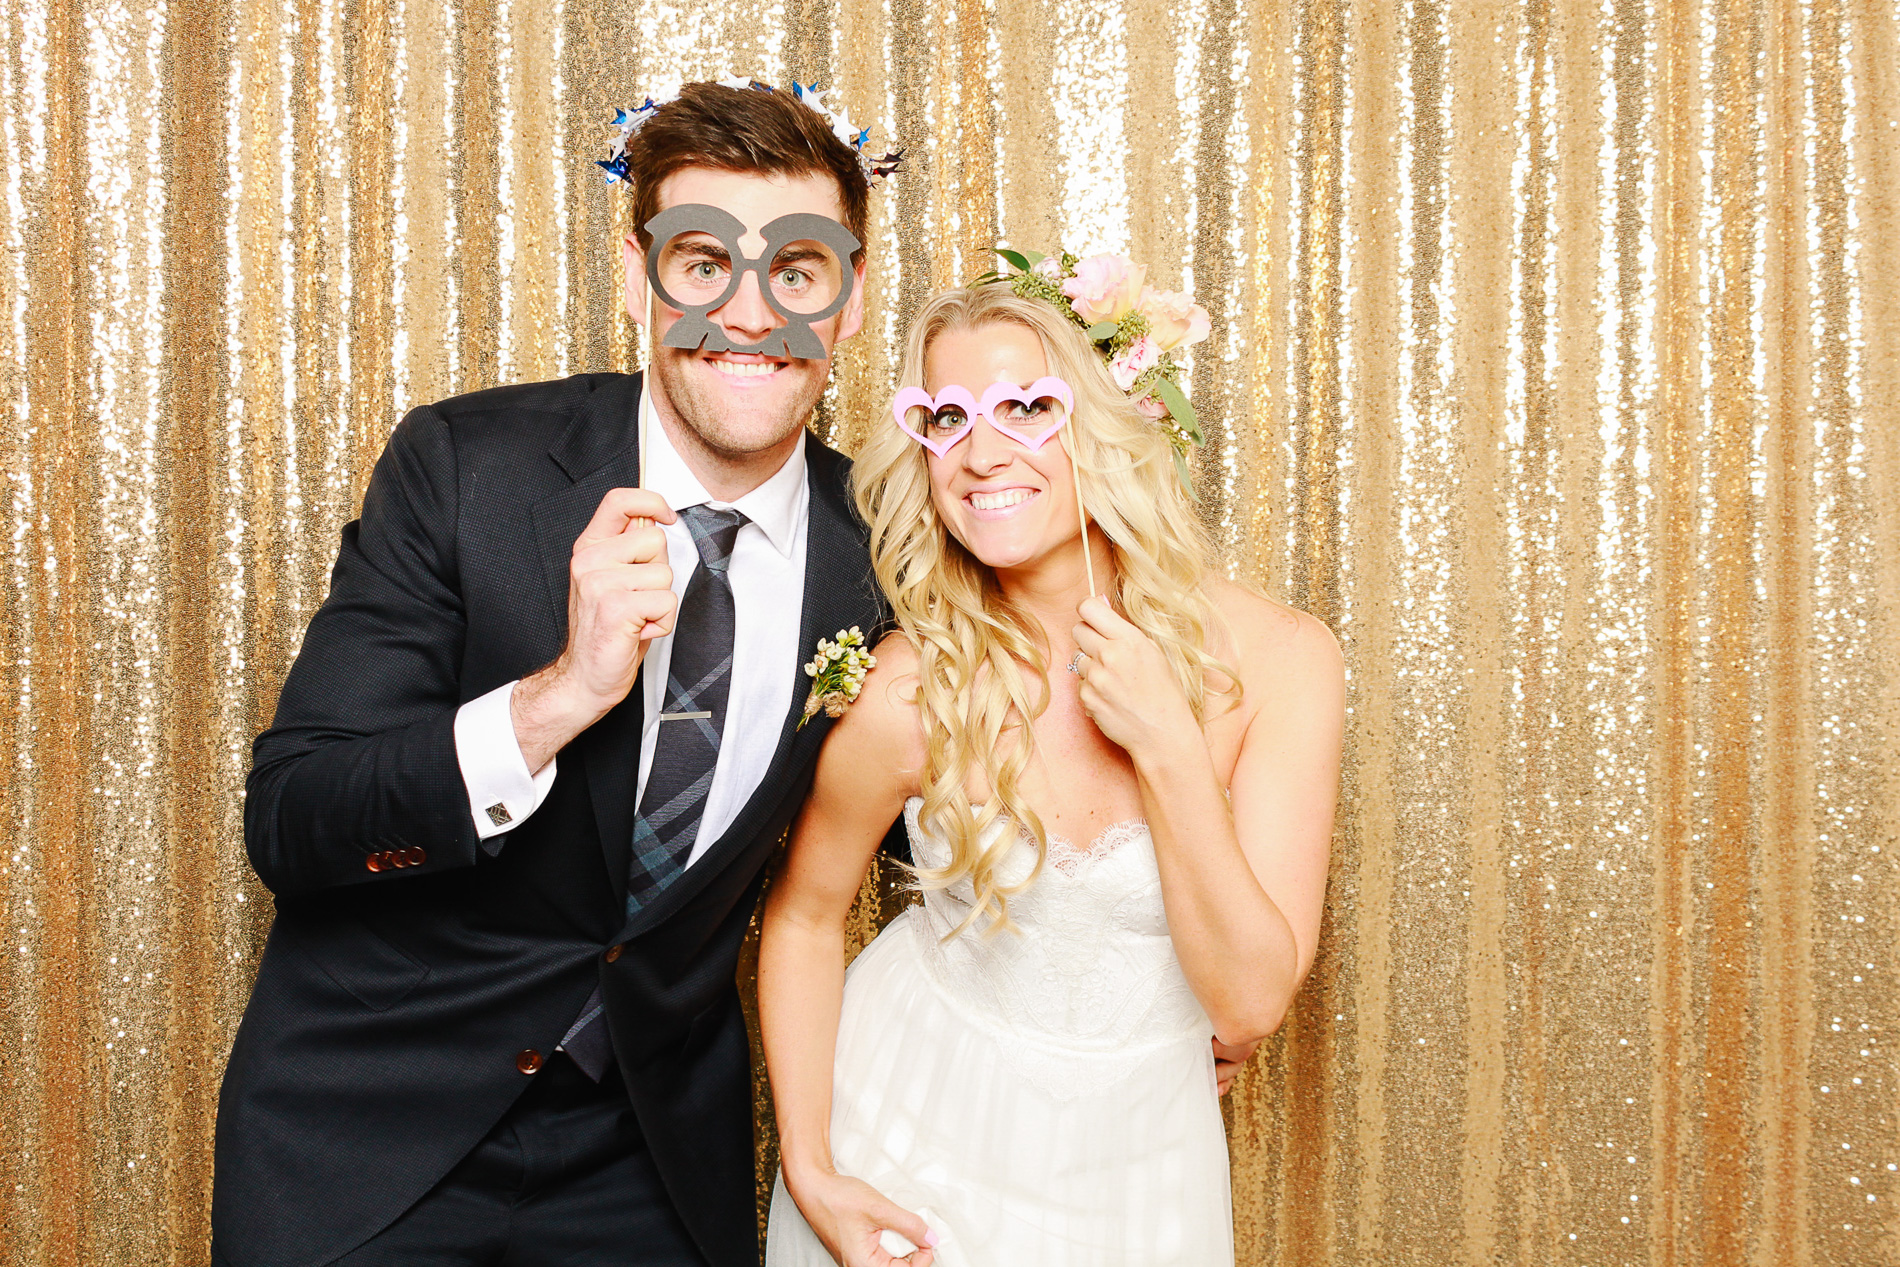 grin-and-bear-booth-photobooth-204736.jpg